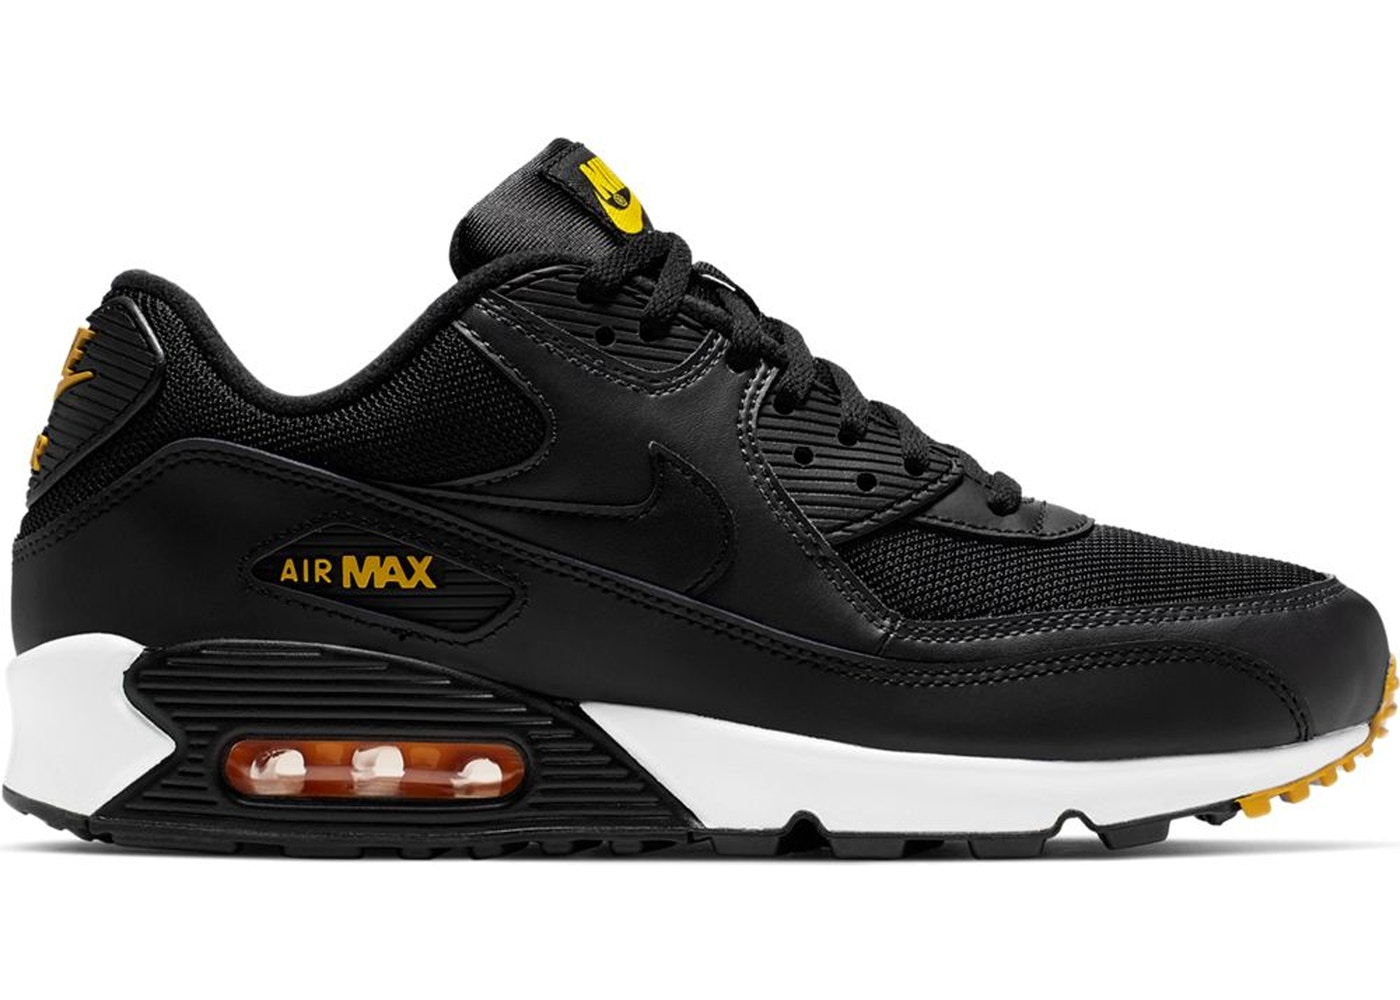 half off 1189d 60e2b Buy Nike Air Max 90 Shoes   Deadstock Sneakers